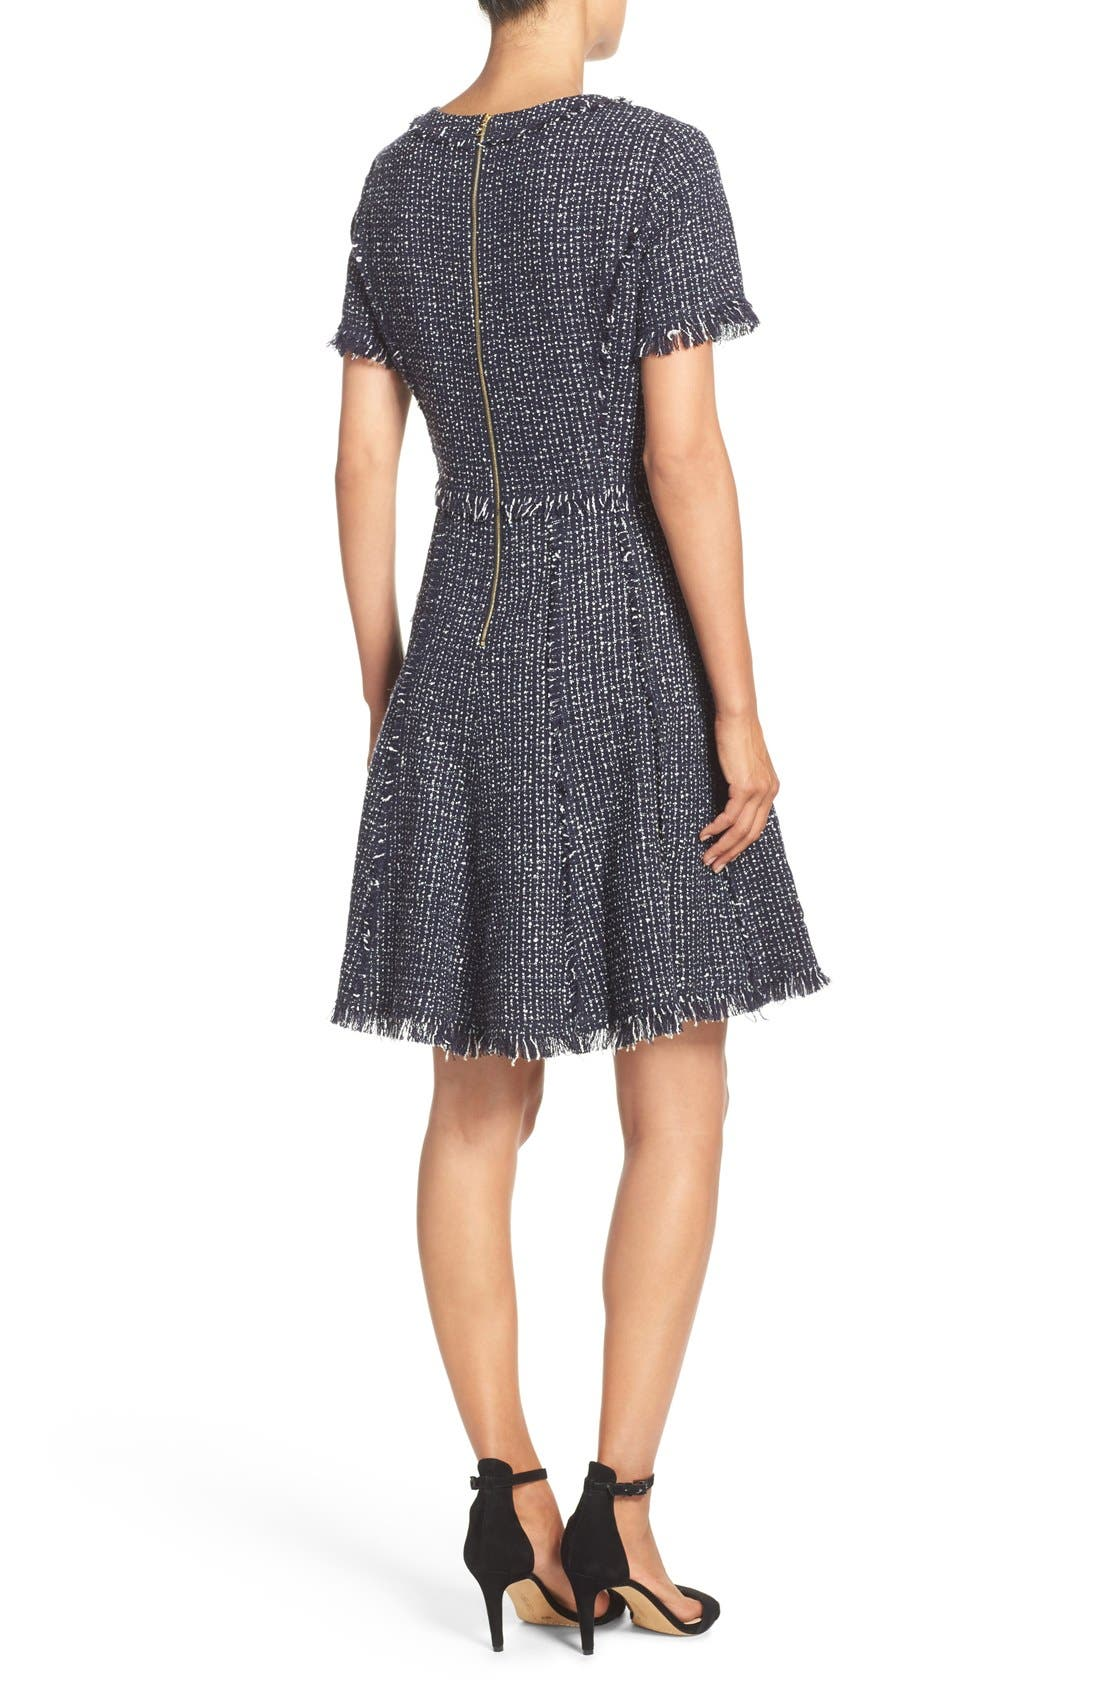 ELIZA J, Tweed Fit & Flare Dress, Alternate thumbnail 4, color, 410